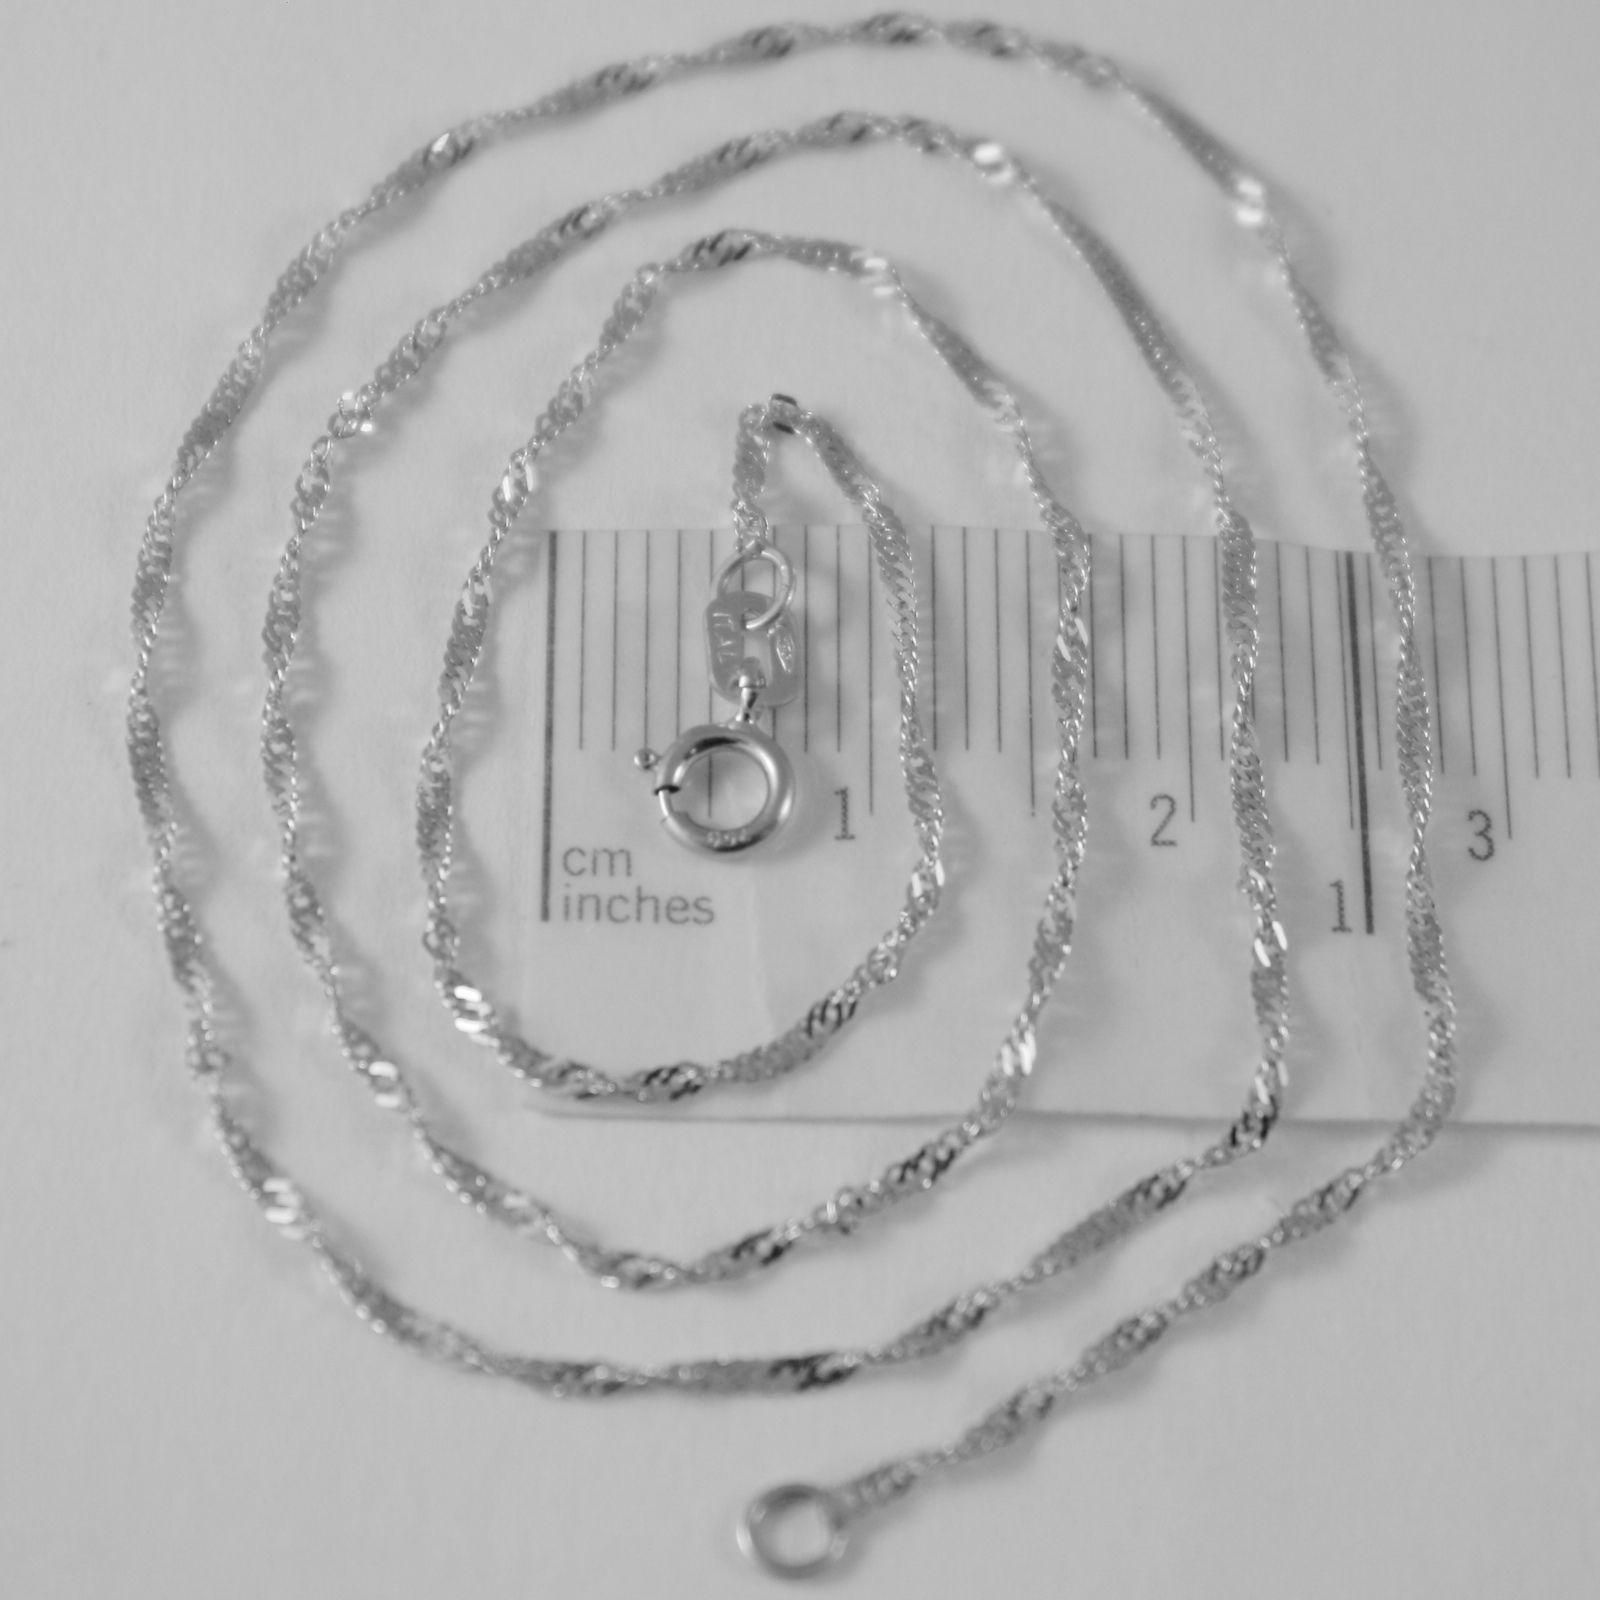 SOLID 18K WHITE GOLD SINGAPORE BRAID ROPE CHAIN 20 INCHES 1.5 MM MADE IN ITALY